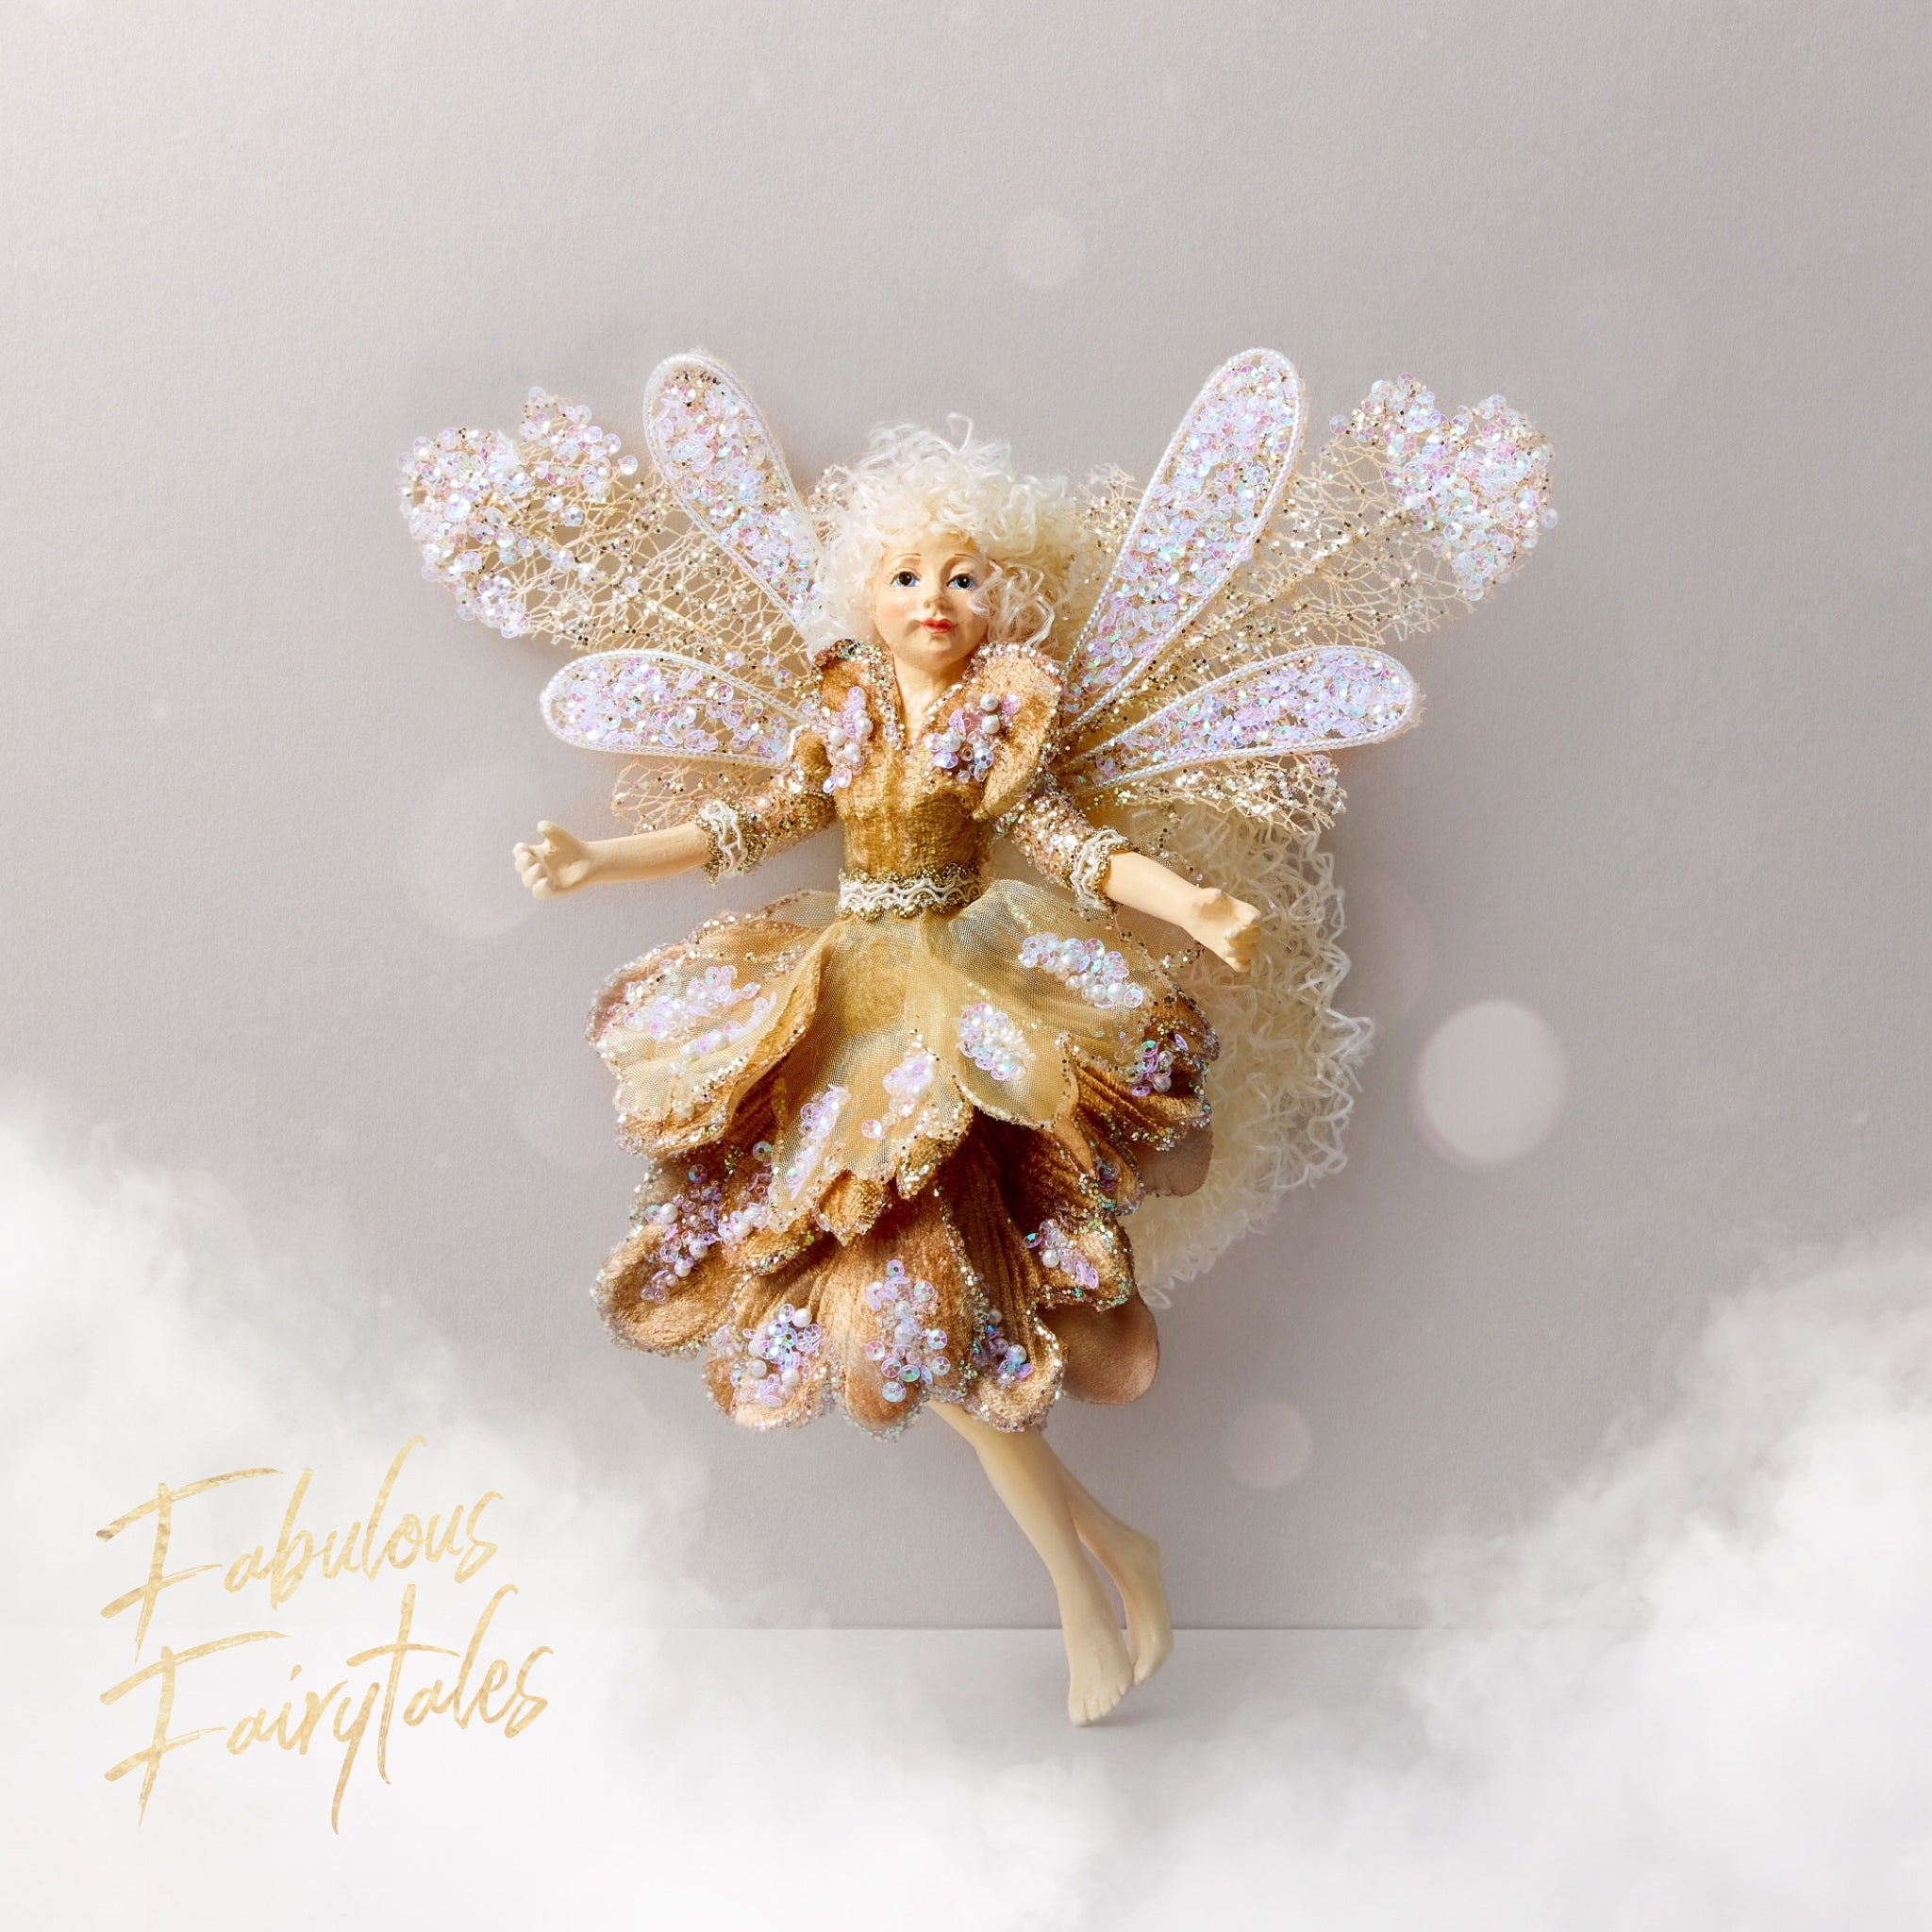 Peachy the Teatime Fairy - Fabulous Fairytales